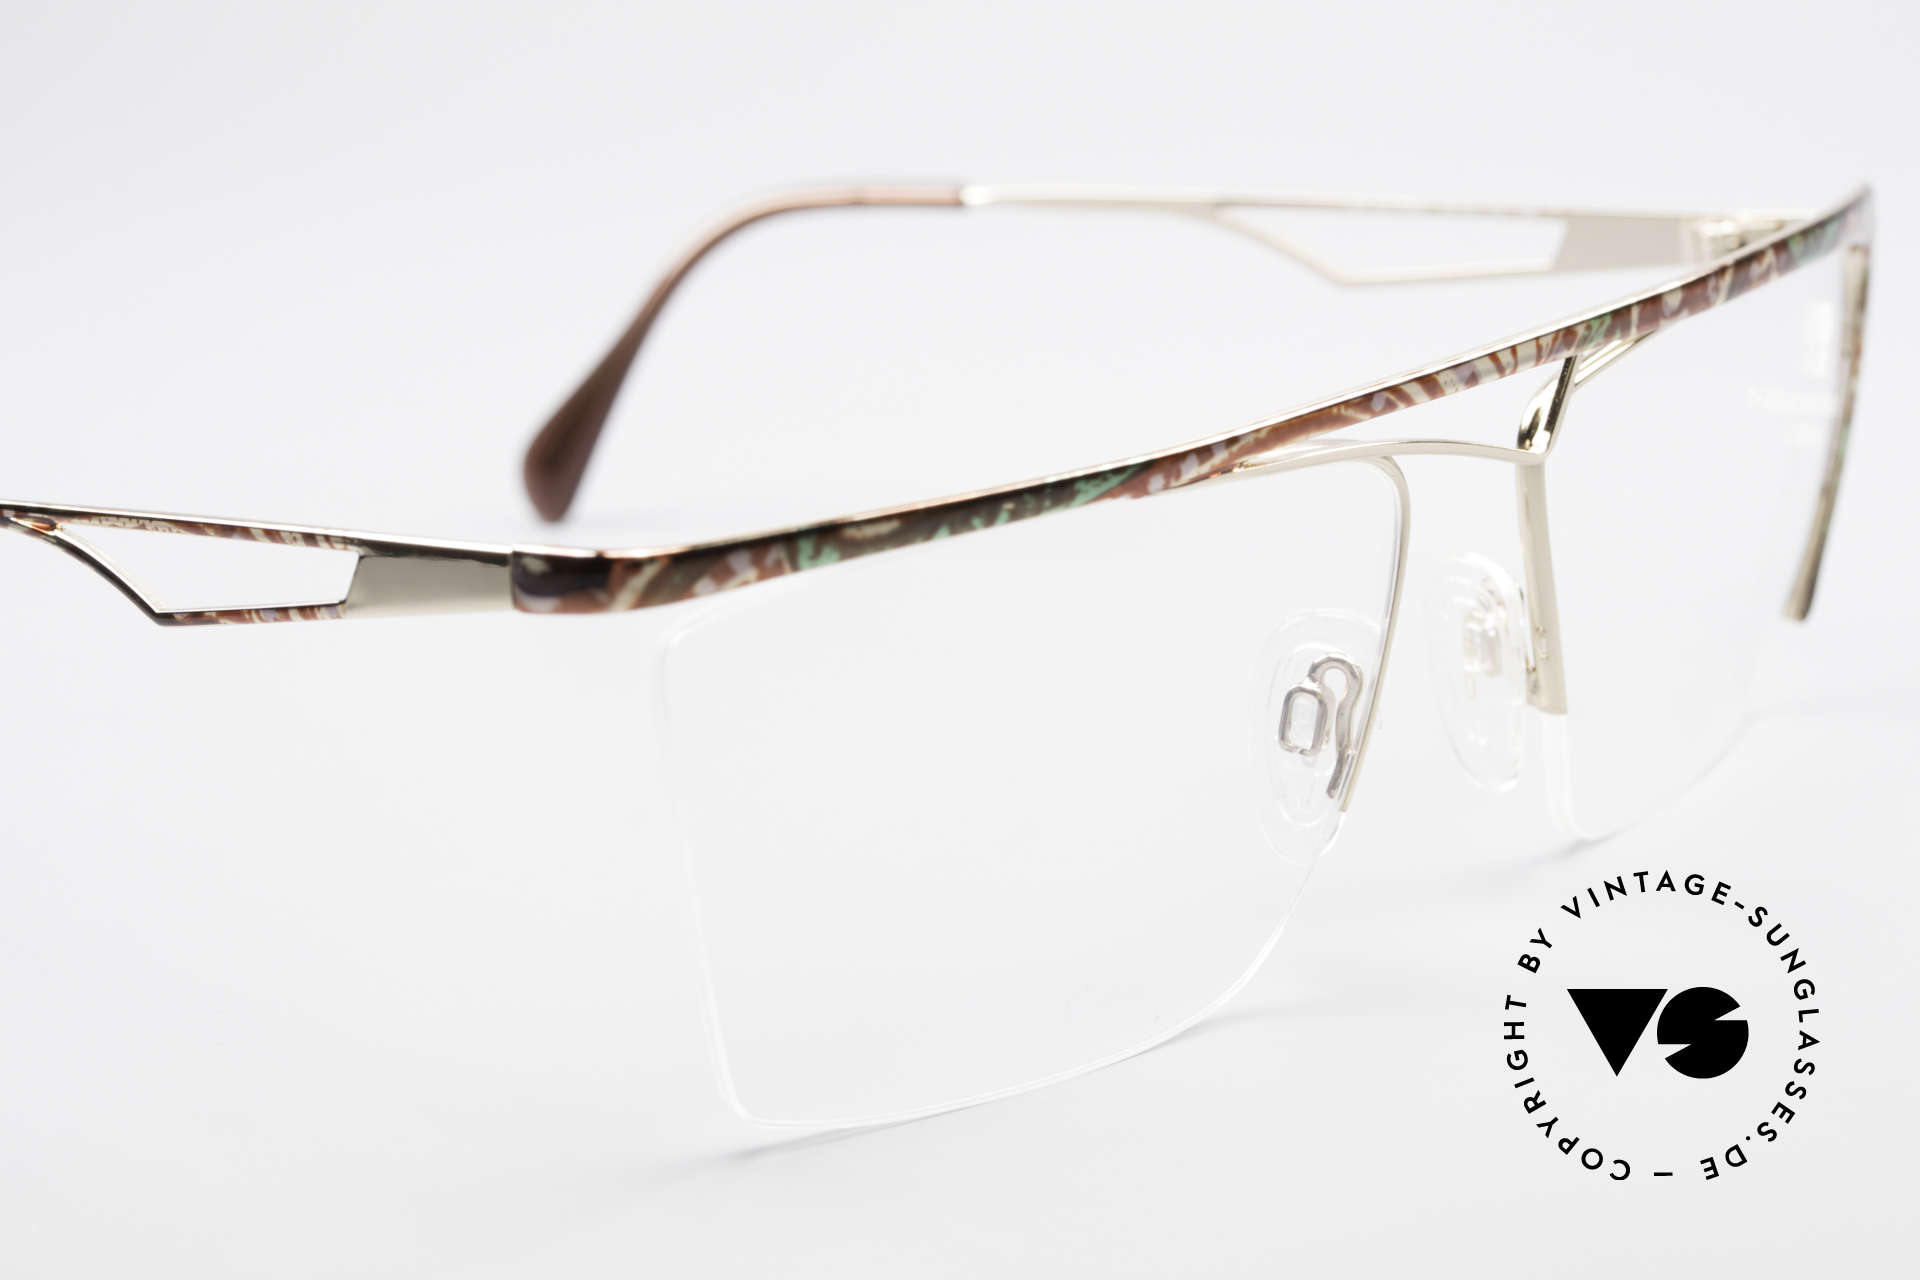 Neostyle Jet 201 Vintage 80's Nylor Frame, unworn (like all our vintage NEOSTYLE eyewear), Made for Men and Women